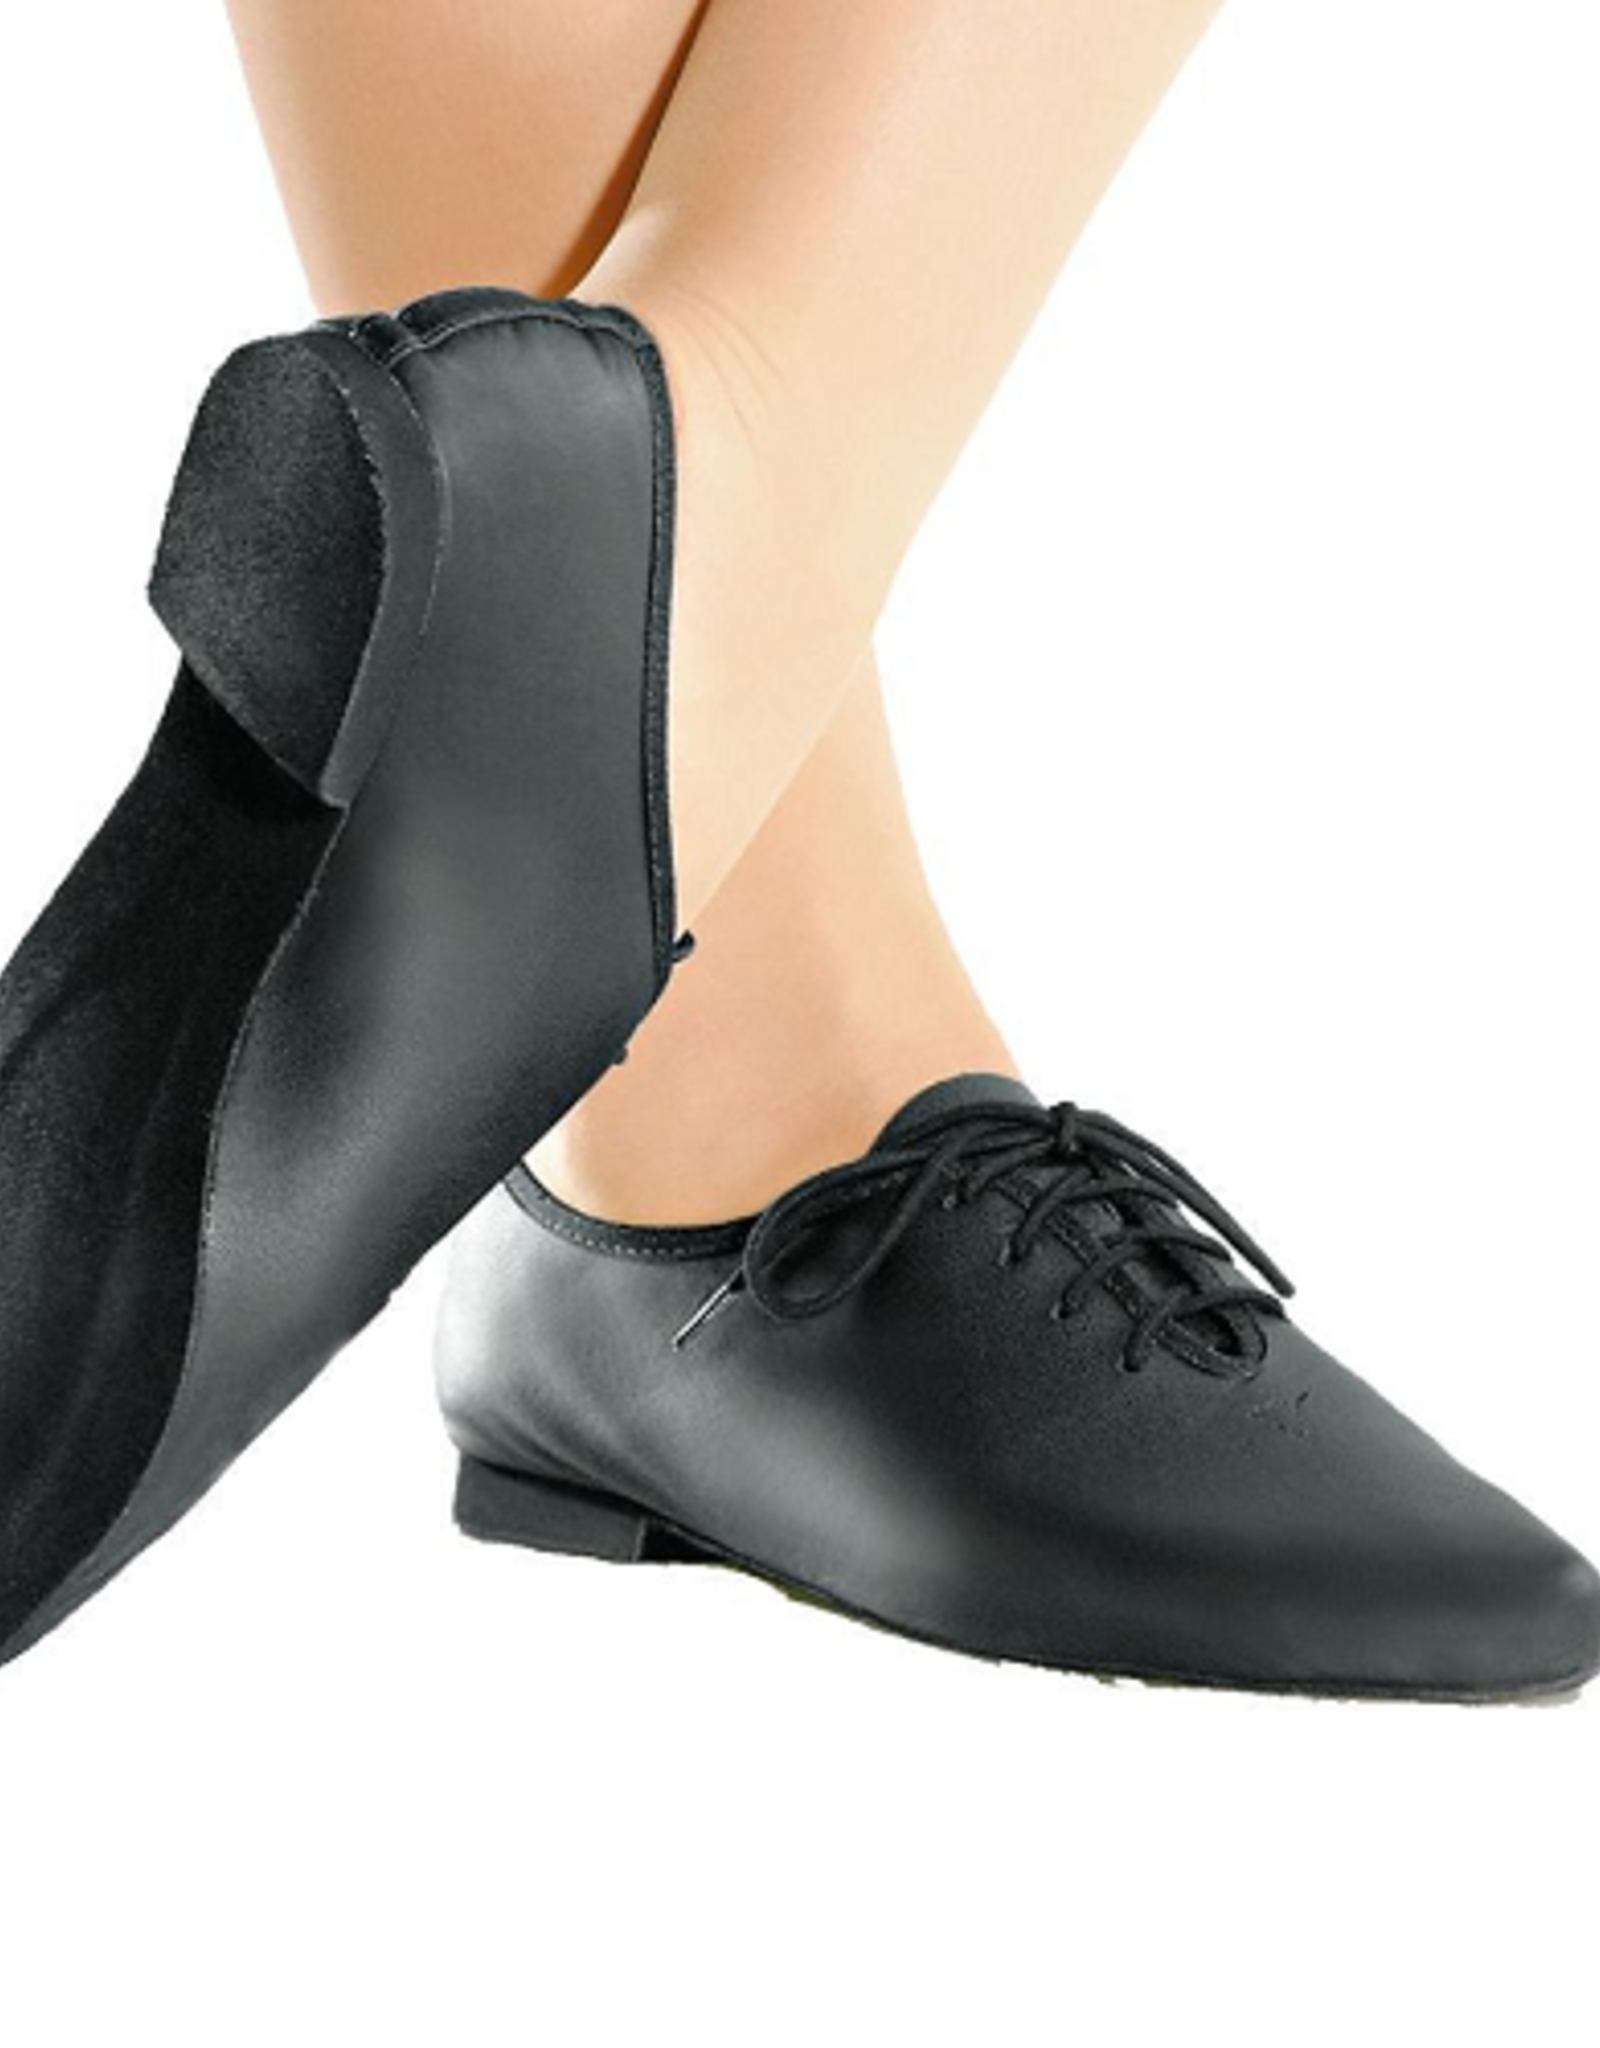 SO DANCA JEAN - LACE UP LEATHER JAZZ SHOES WITH FULL SUEDE SOLE (JZ-05)